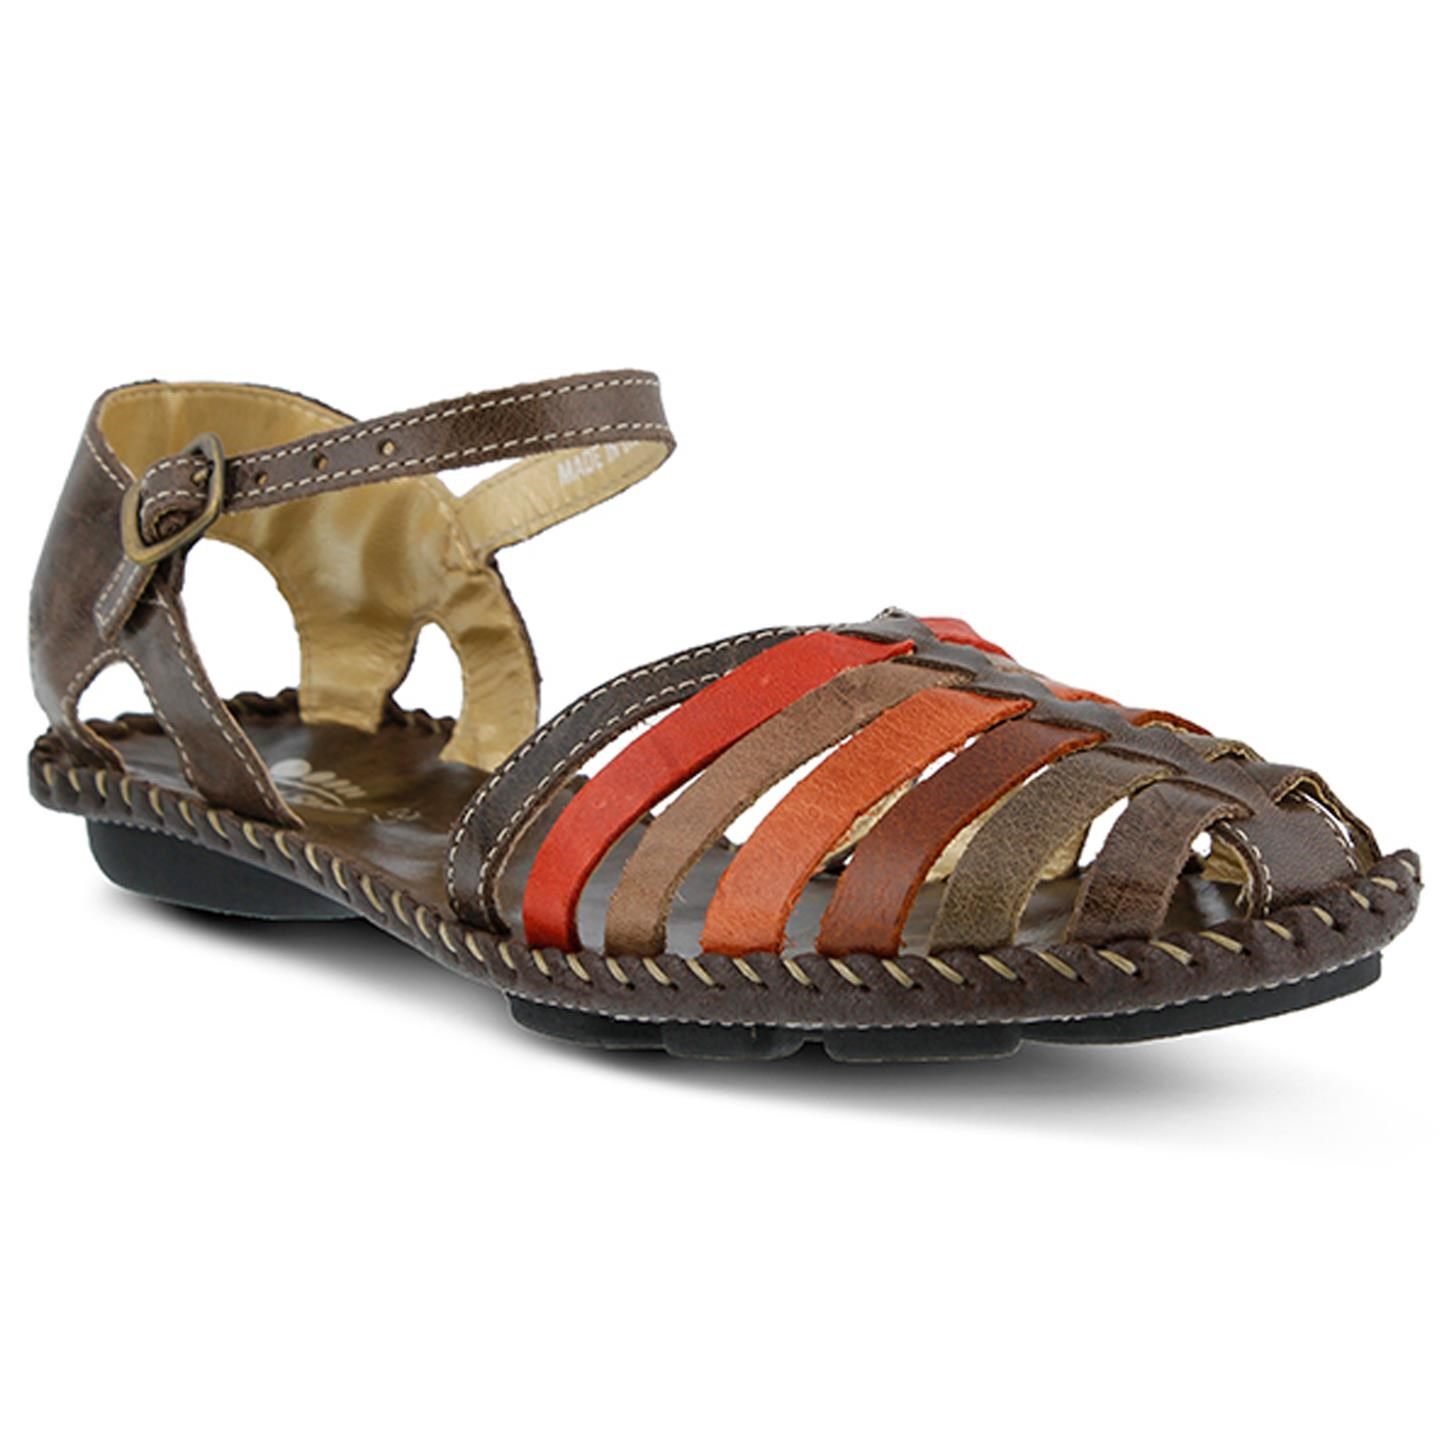 Chilton By Spring Step Brown Womens Leather Sandal 39 EU   8.5 US Women by Spring Step